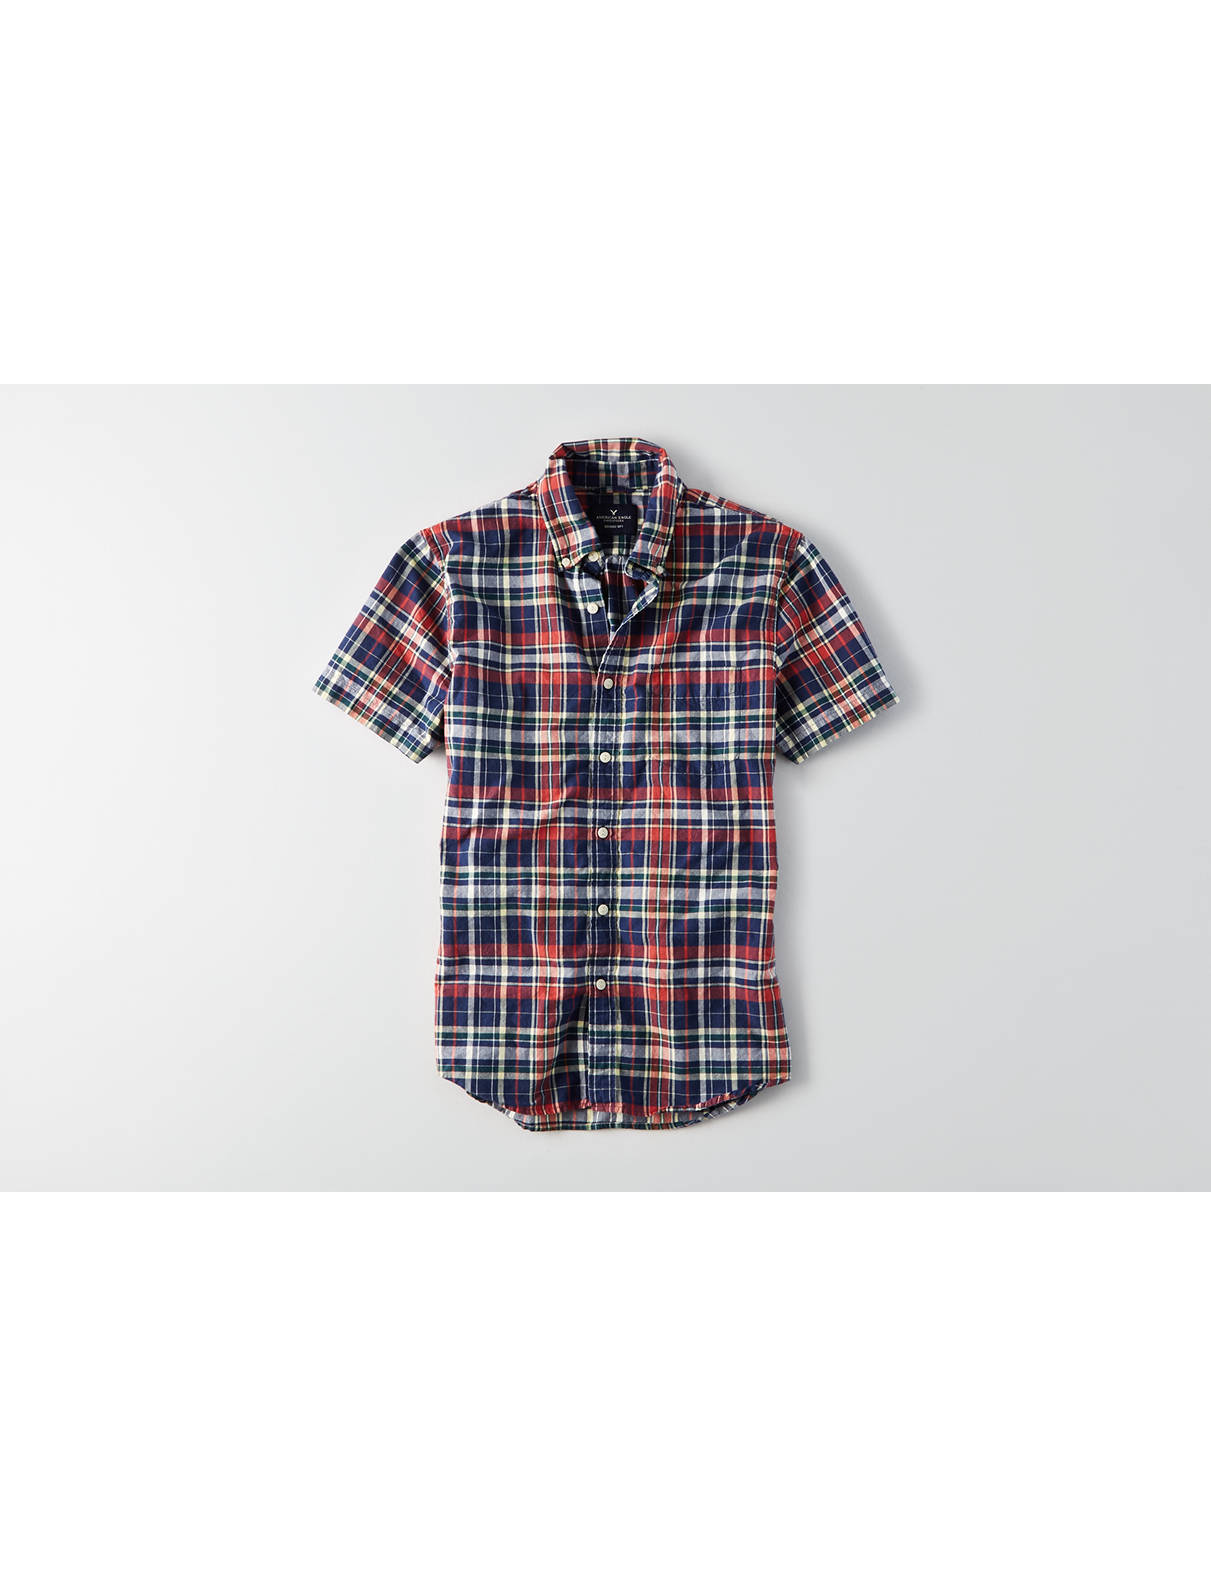 Button Down Shirts for Men | American Eagle Outfitters